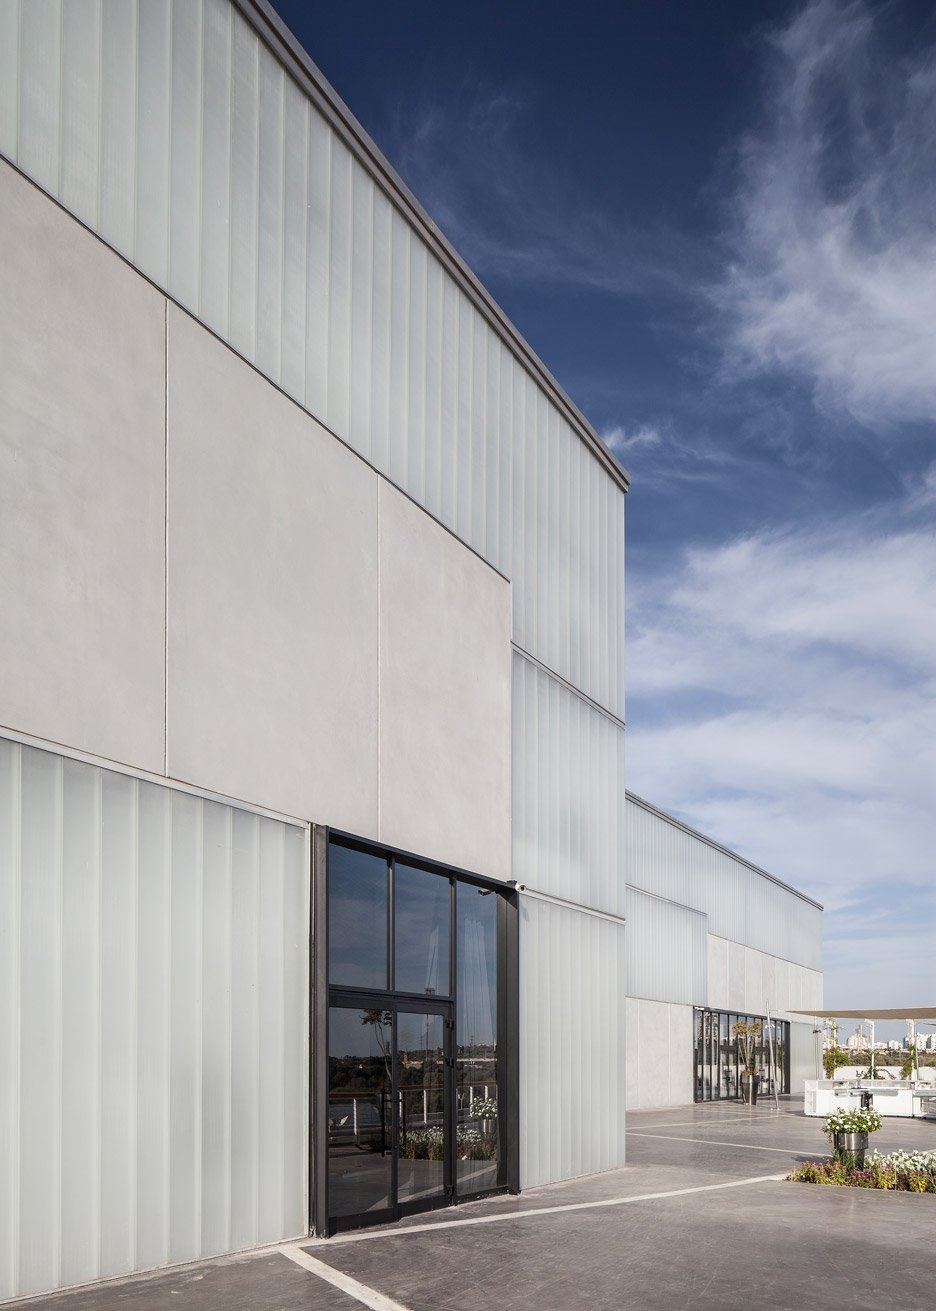 Lago events hall by Pitsou Kedem in Rishon LeZion, Israel architecture